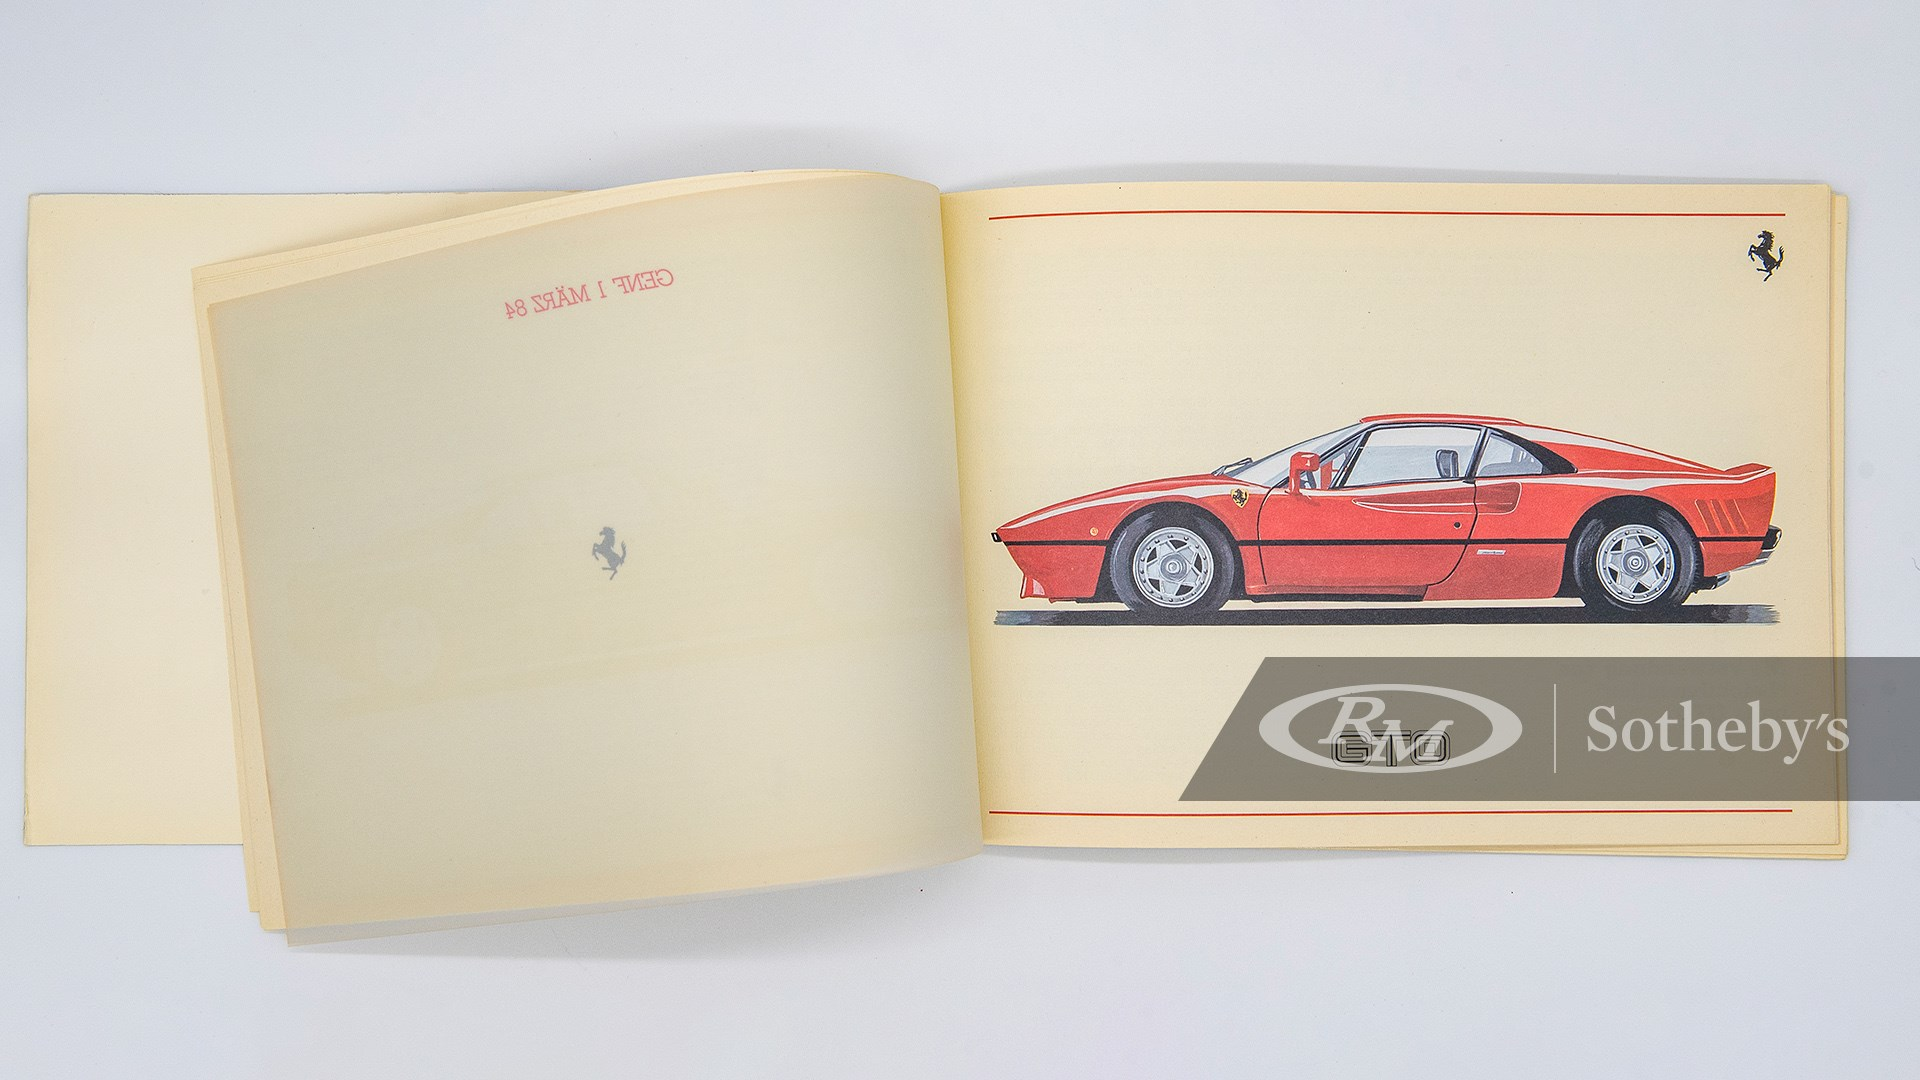 Ferrari 288 GTO Owner's Manual Set with Folio available at RM Sotheby's Online Only Open Roads April Auction 2021